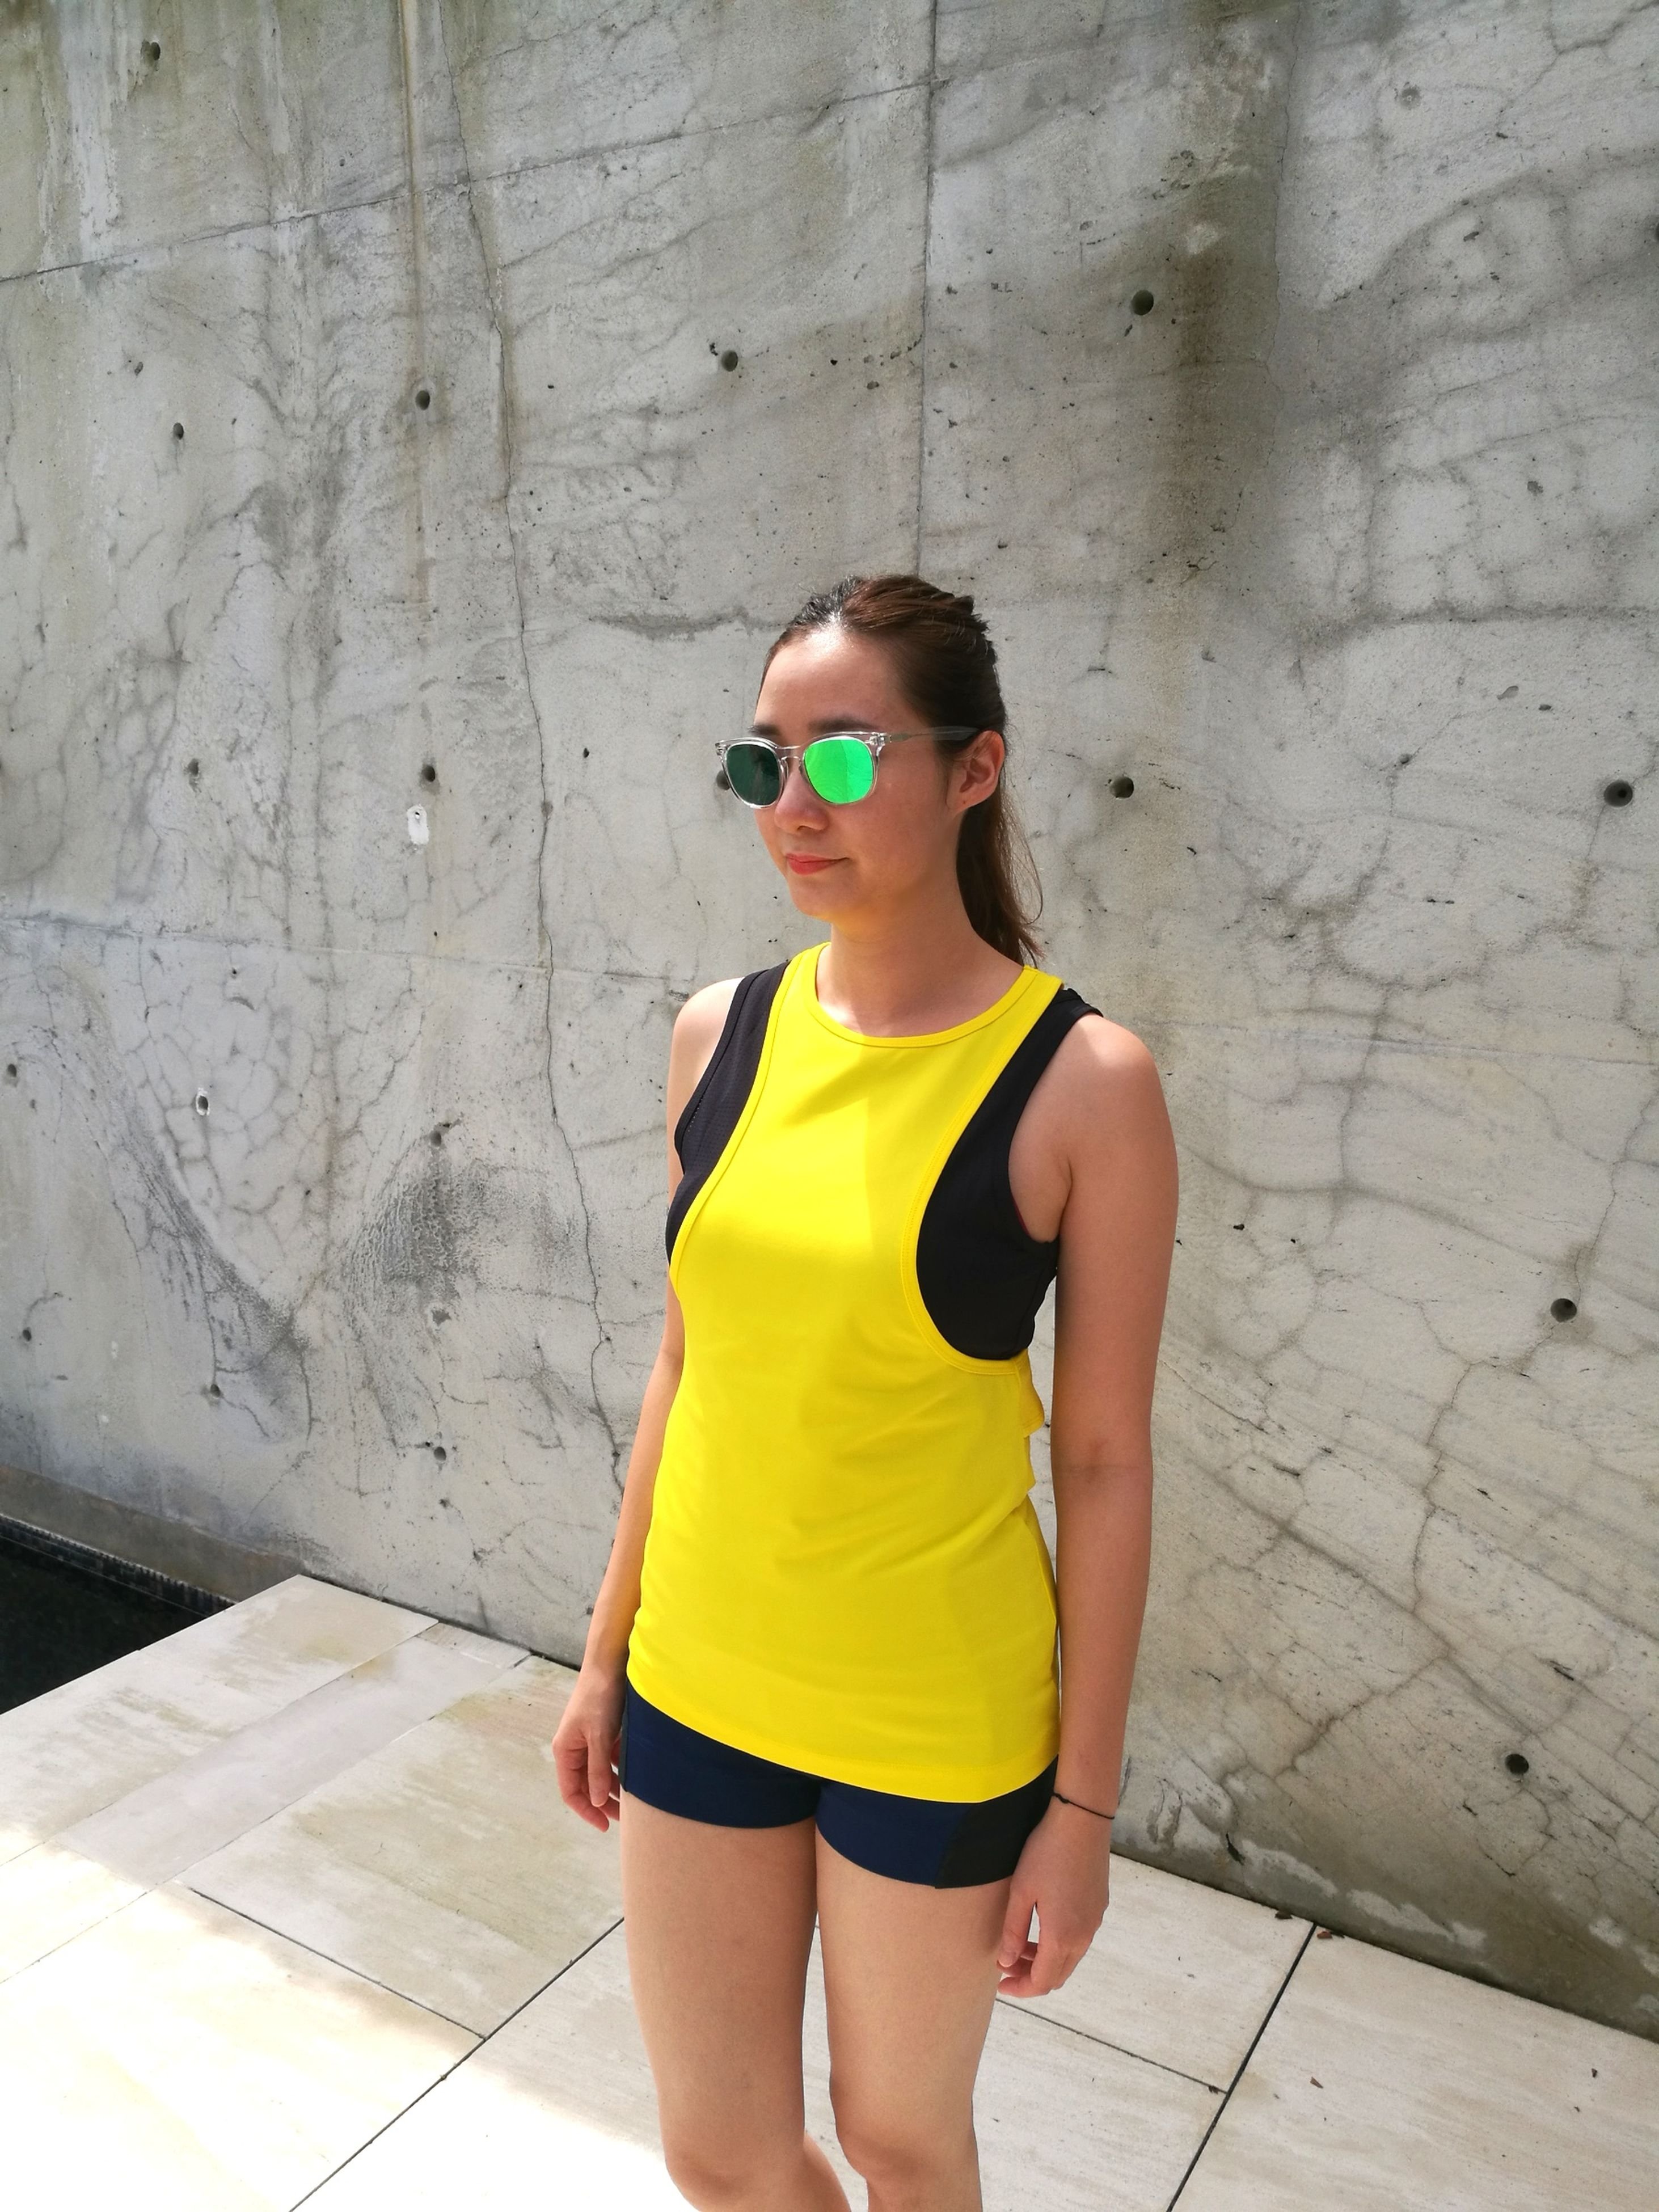 sunglasses, one person, leisure activity, young adult, casual clothing, real people, lifestyles, young women, t-shirt, day, standing, outdoors, yellow, architecture, adult, adults only, people